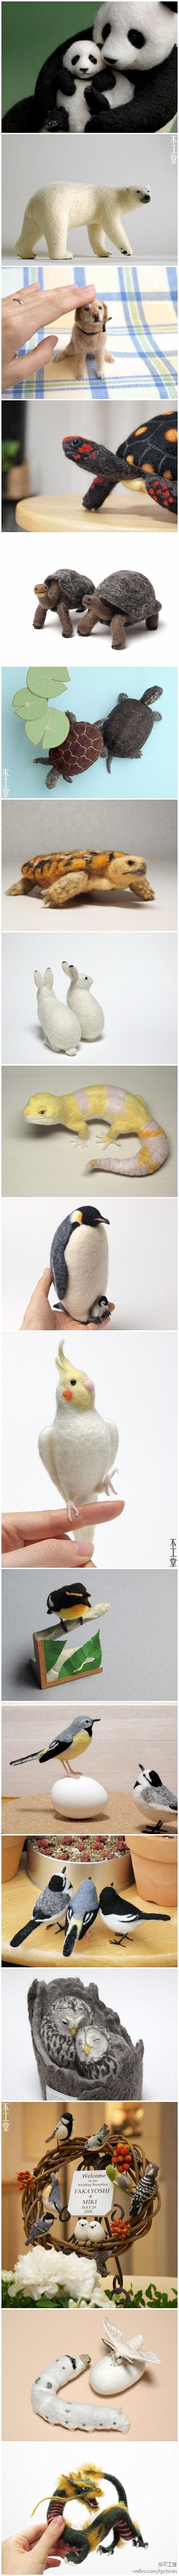 Various animals- needle felting: